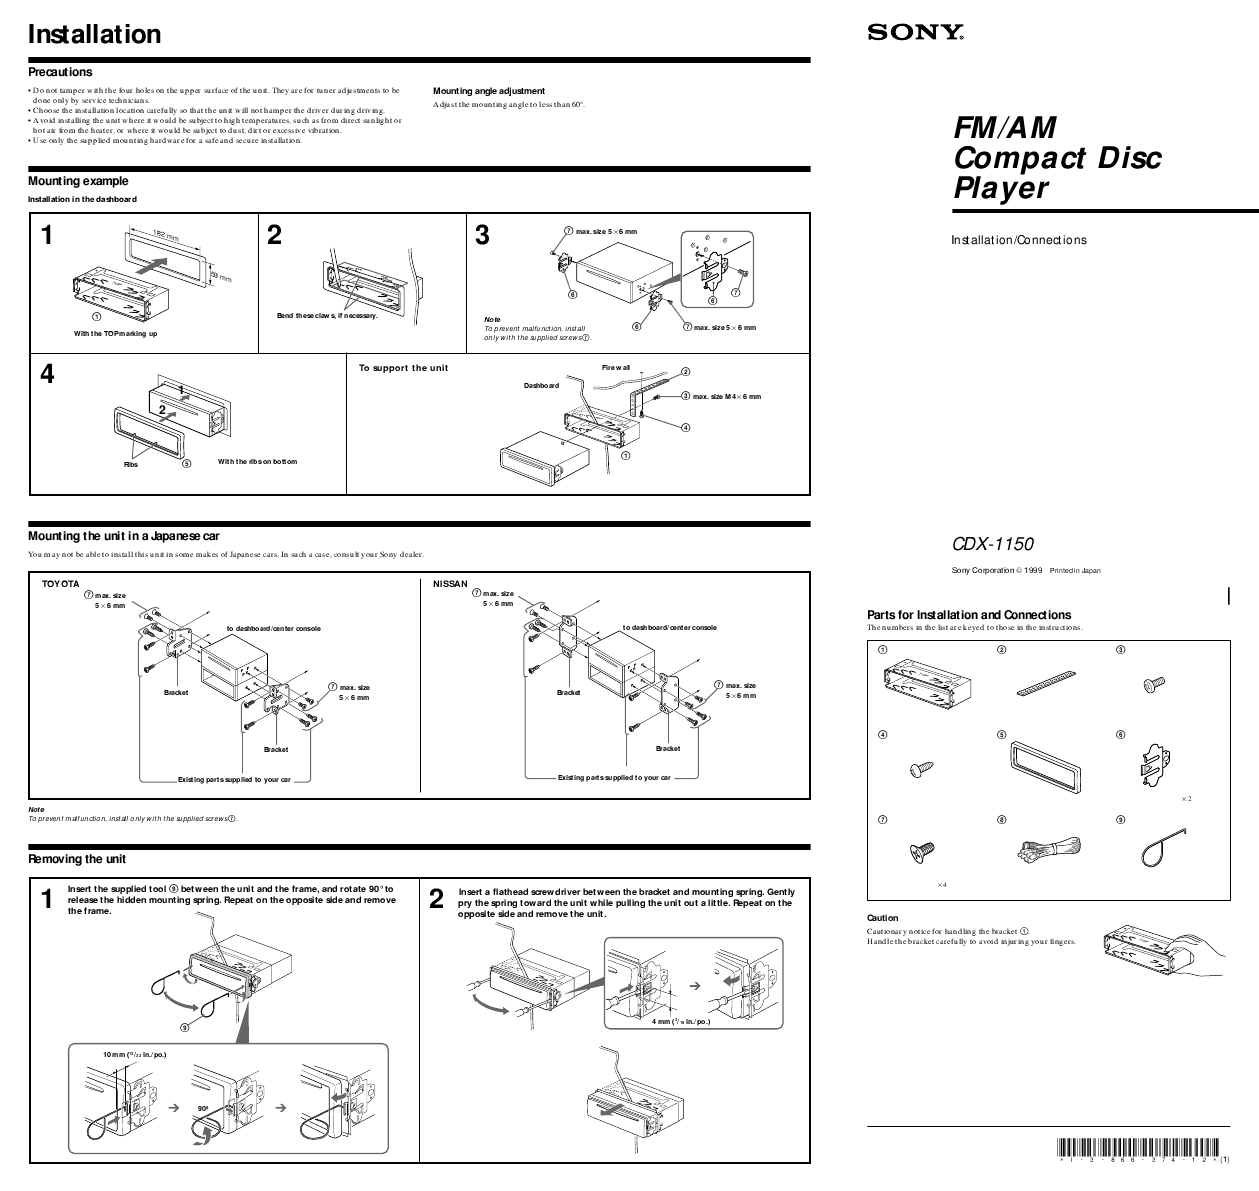 Sony CD Player Wiring Diagram http://caraudio.manualsonline.com/manuals/mfg/sony/cdx1150.html